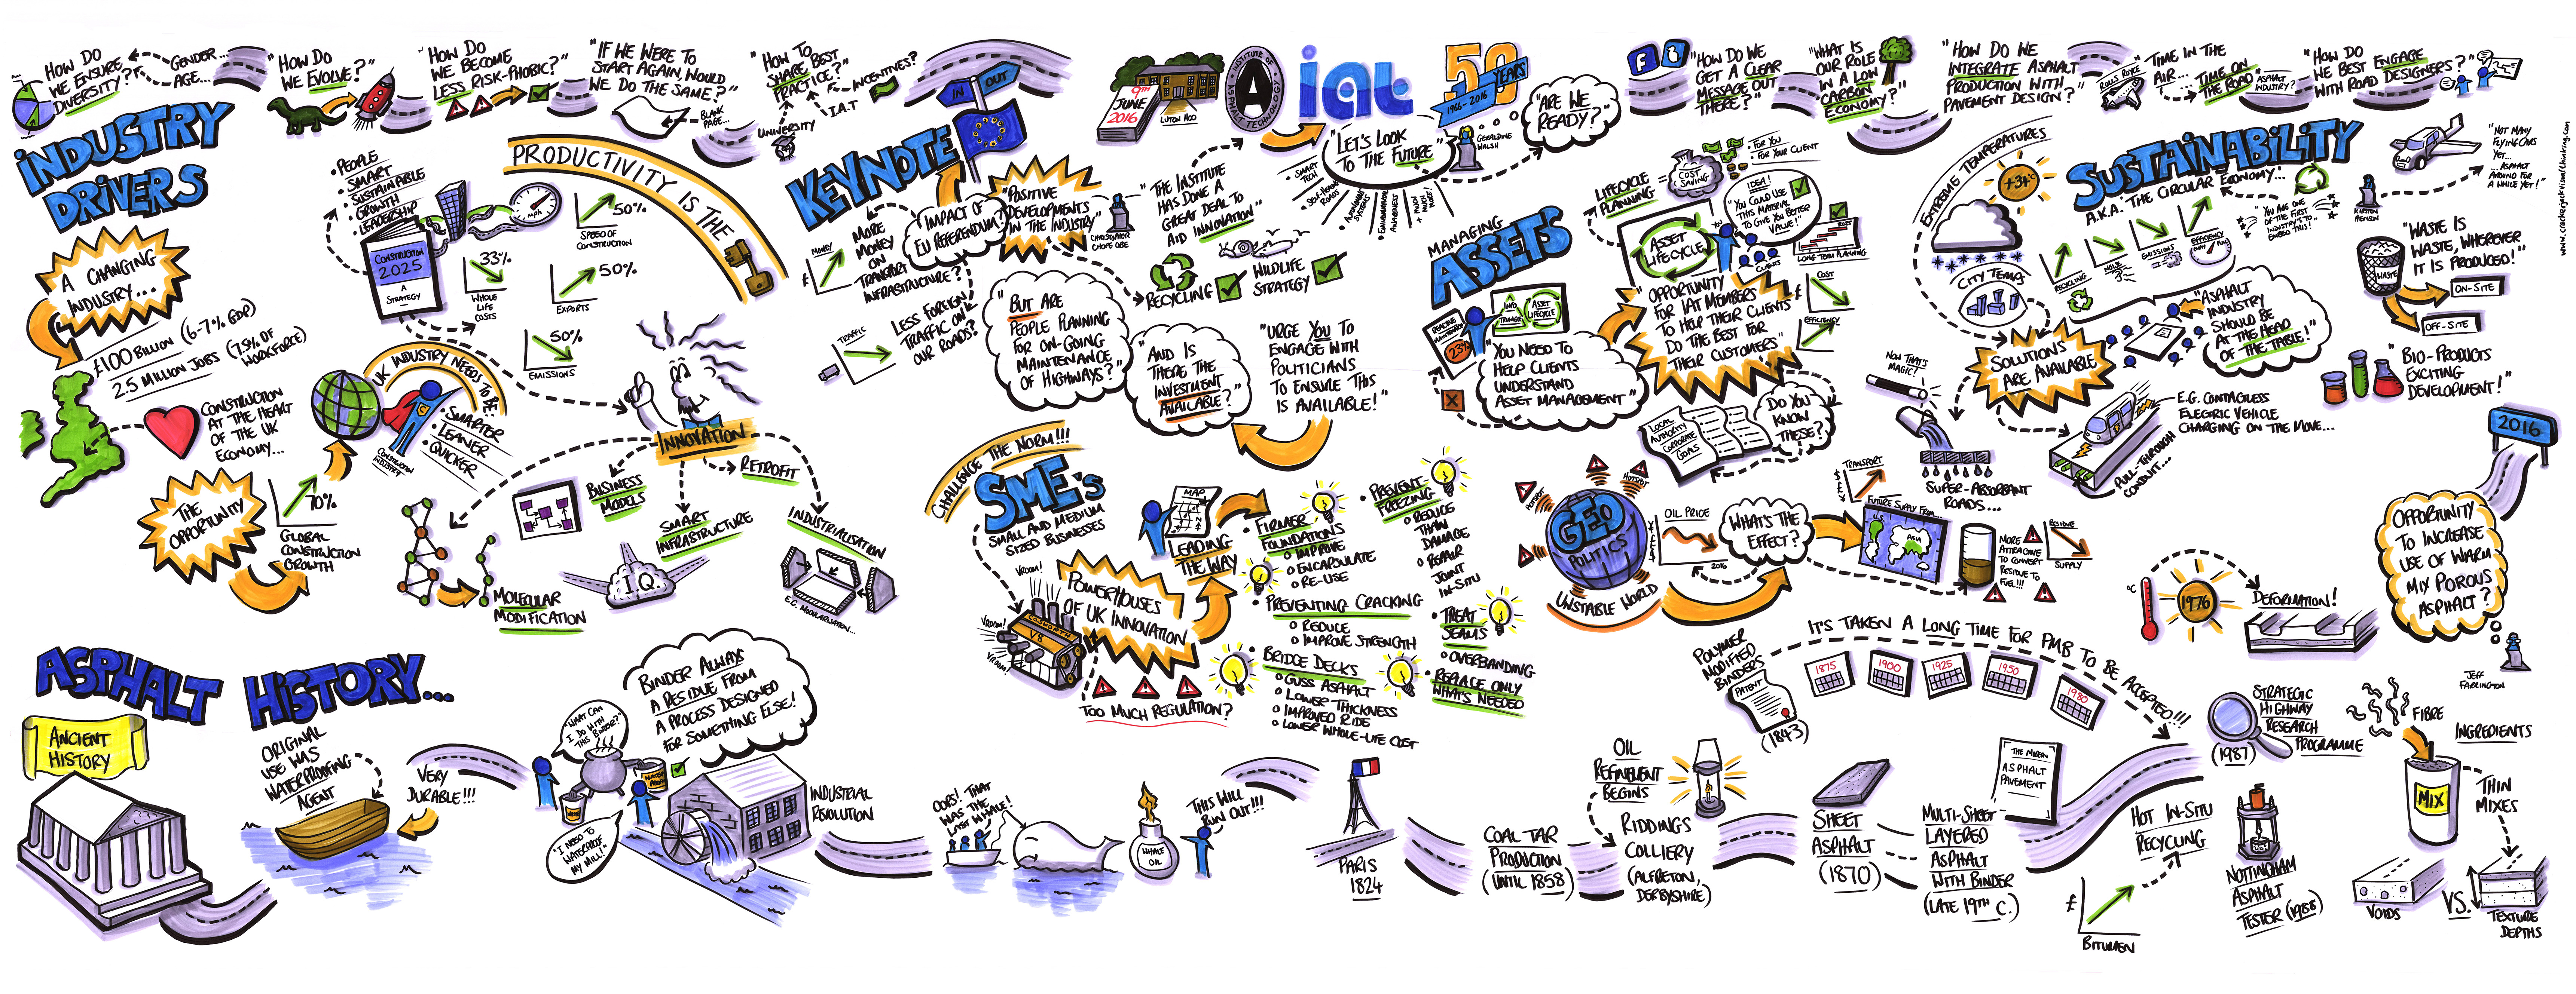 The Institute of Asphalt Technology 50 Years Conference graphic recording